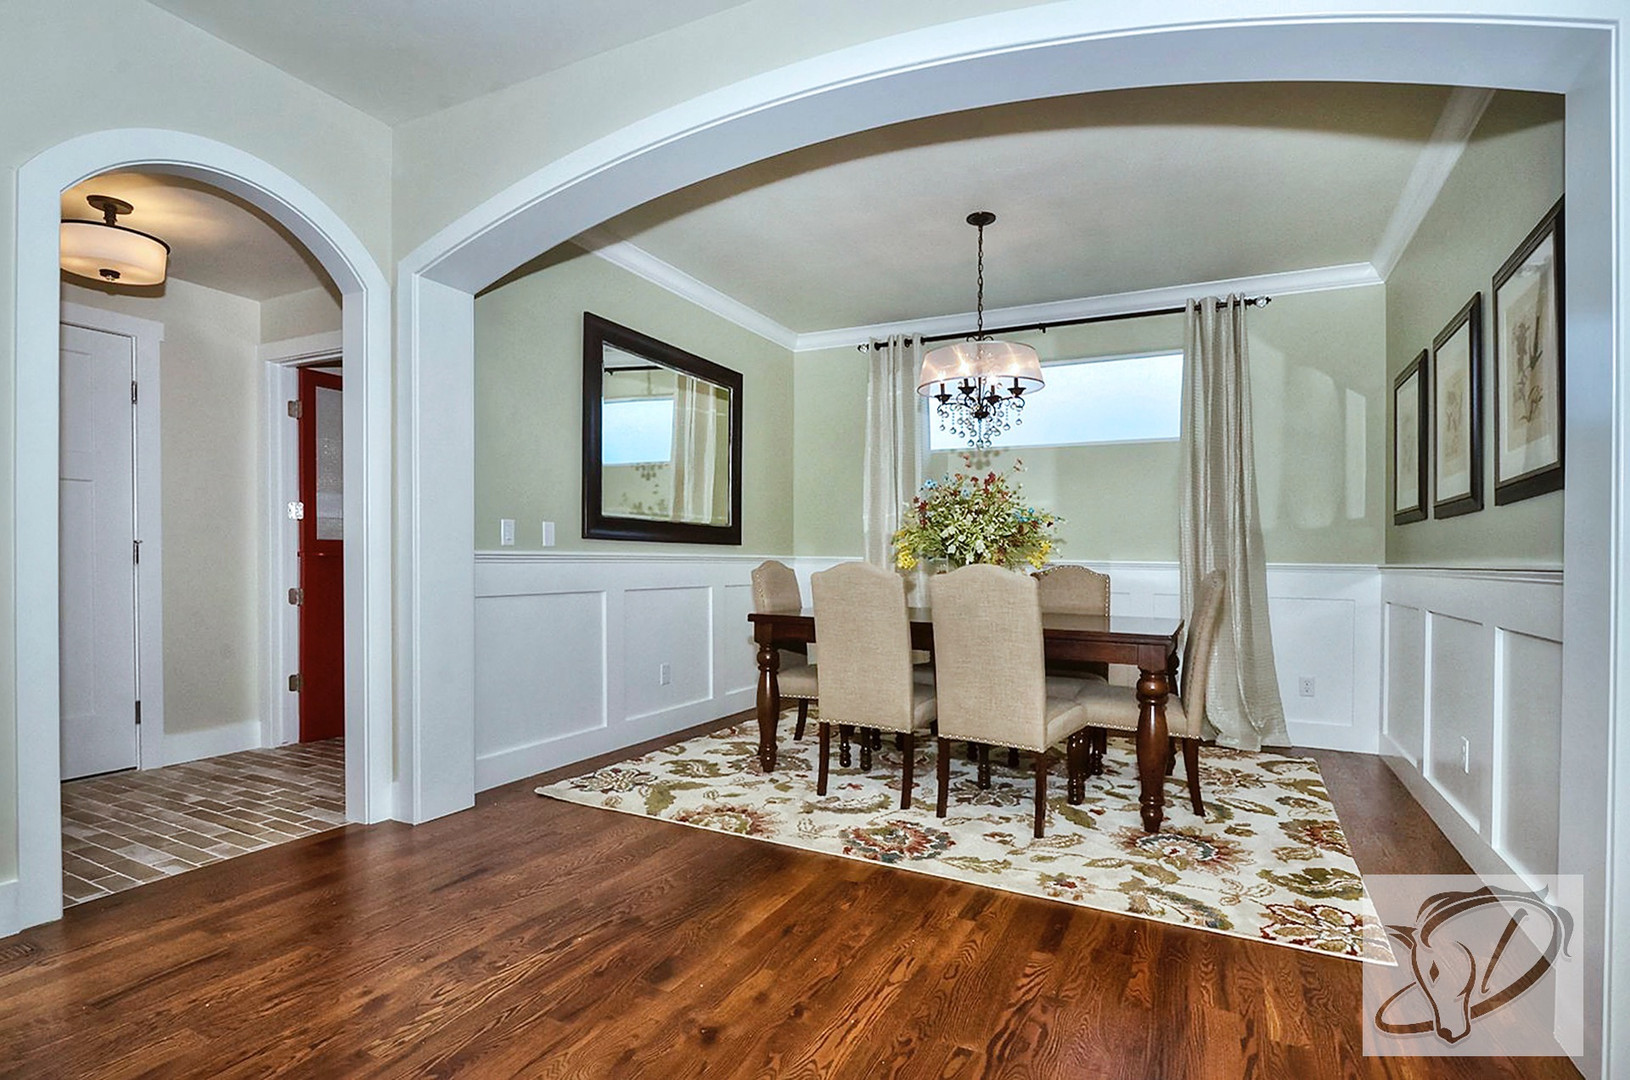 Dining room with classic oak floors, oil rubbed bronze and crystal chandelier and wainscoting. Dining table was purchased second hand to keep budget in check